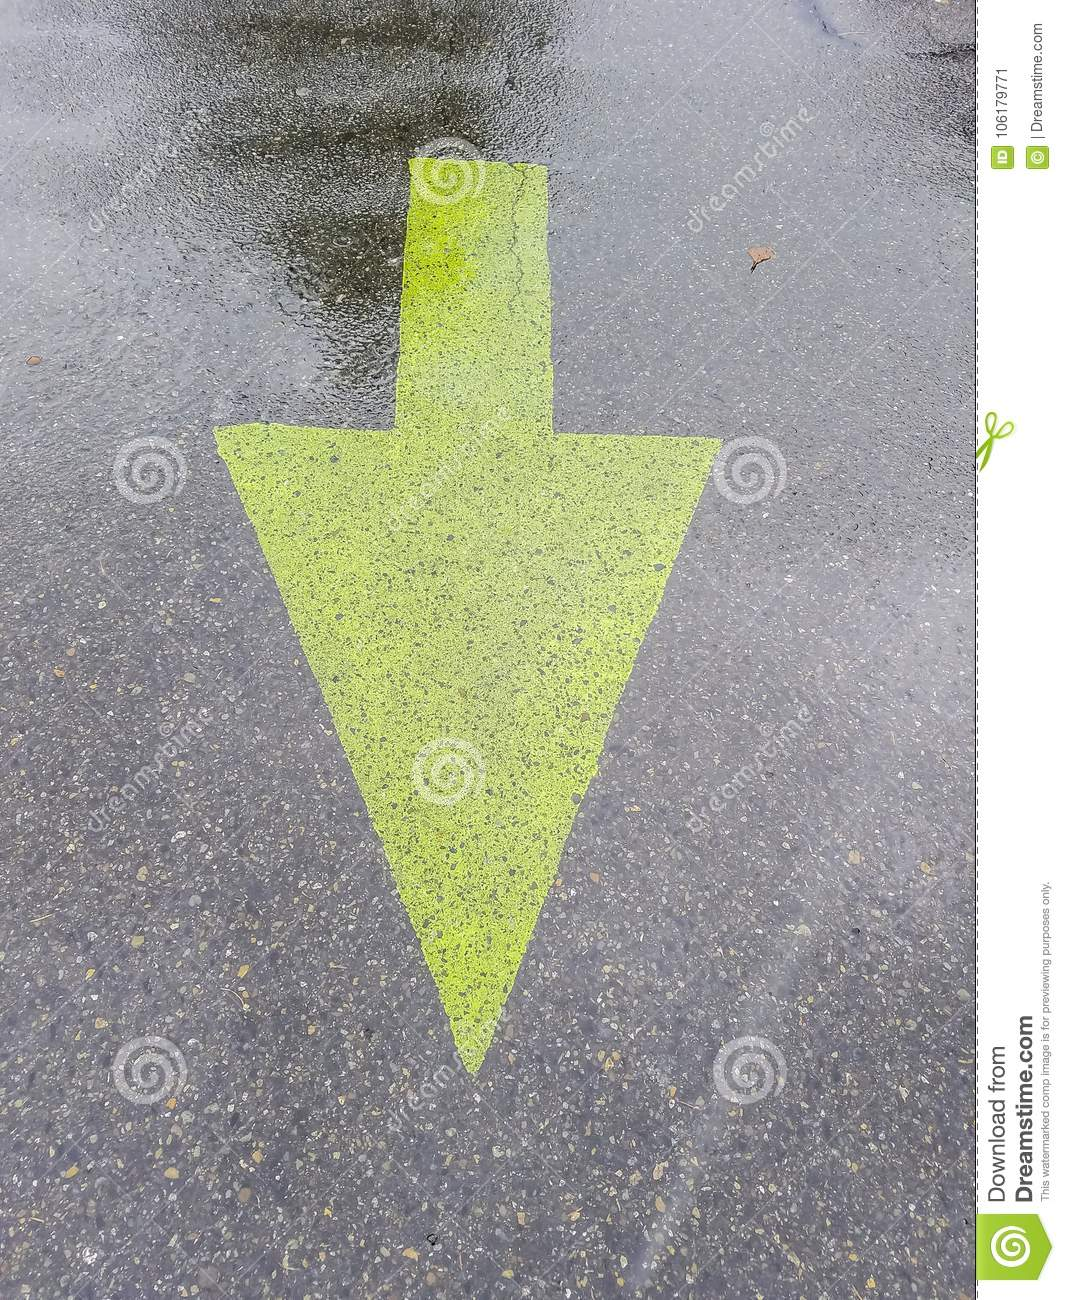 Arrow On Ground Telling Us Where To Go 3 Stock Image - Image